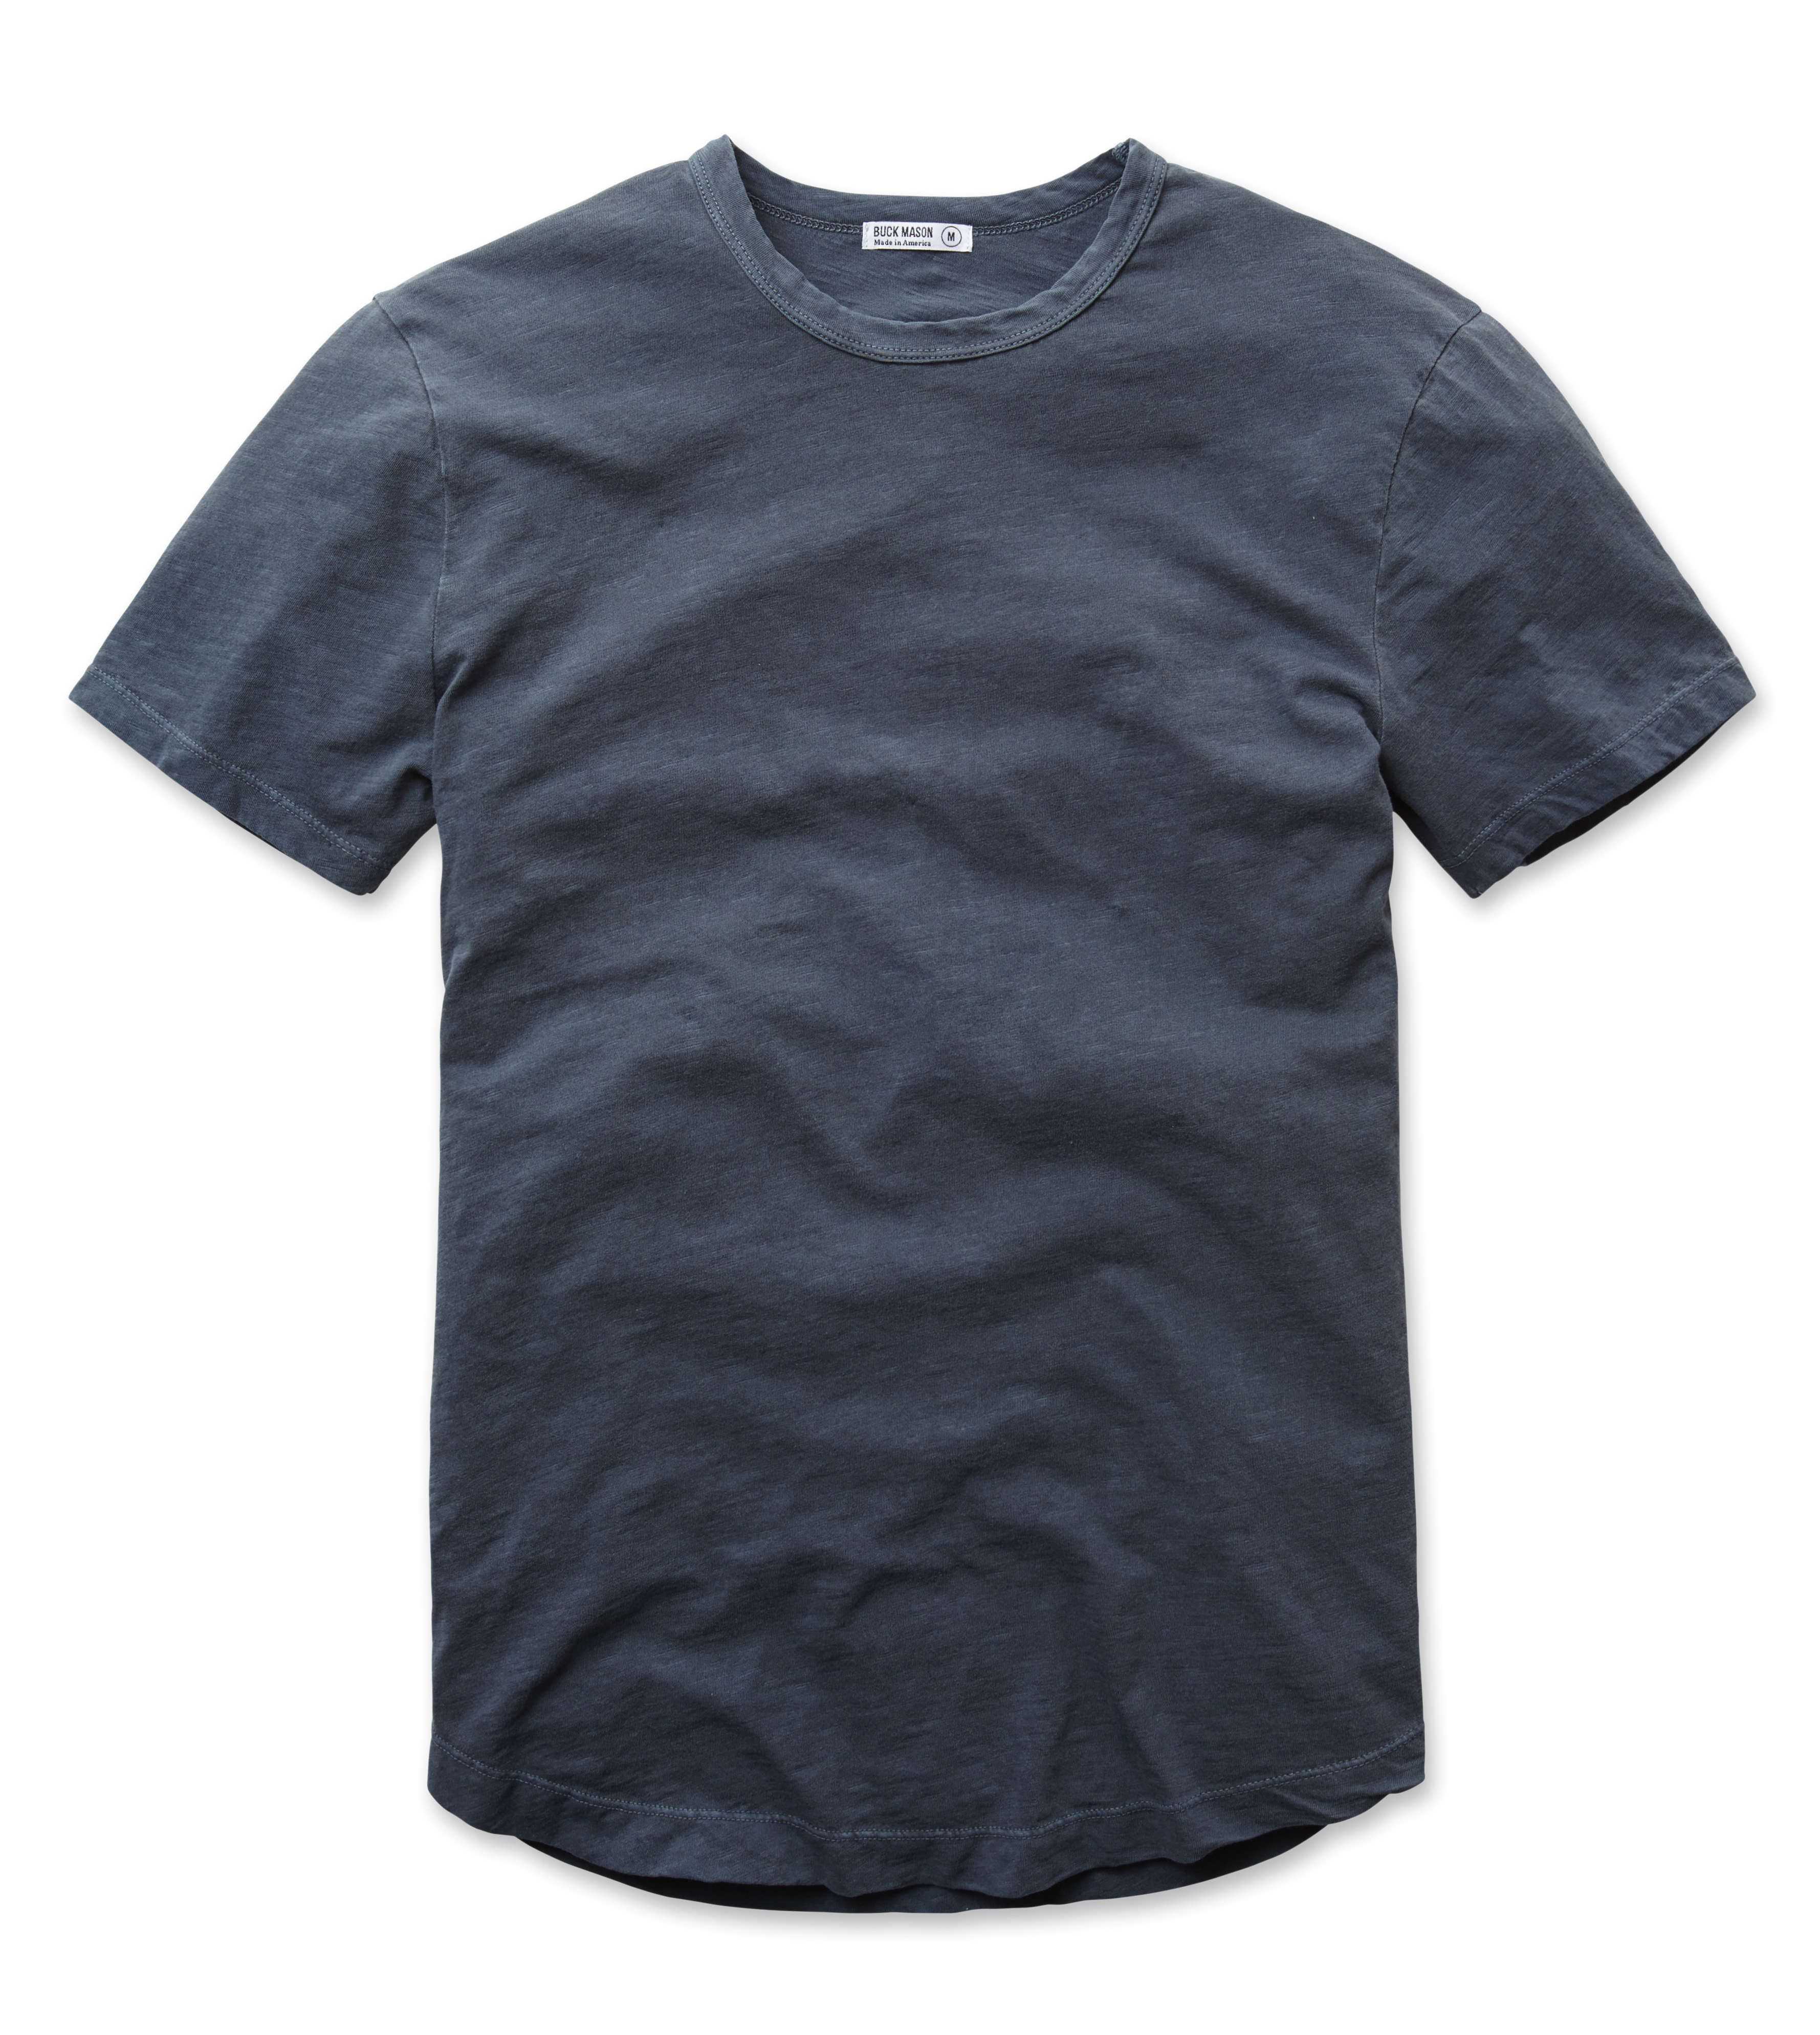 6373f5753f0e Just a plain T-shirt? Think again -- made in America construction,